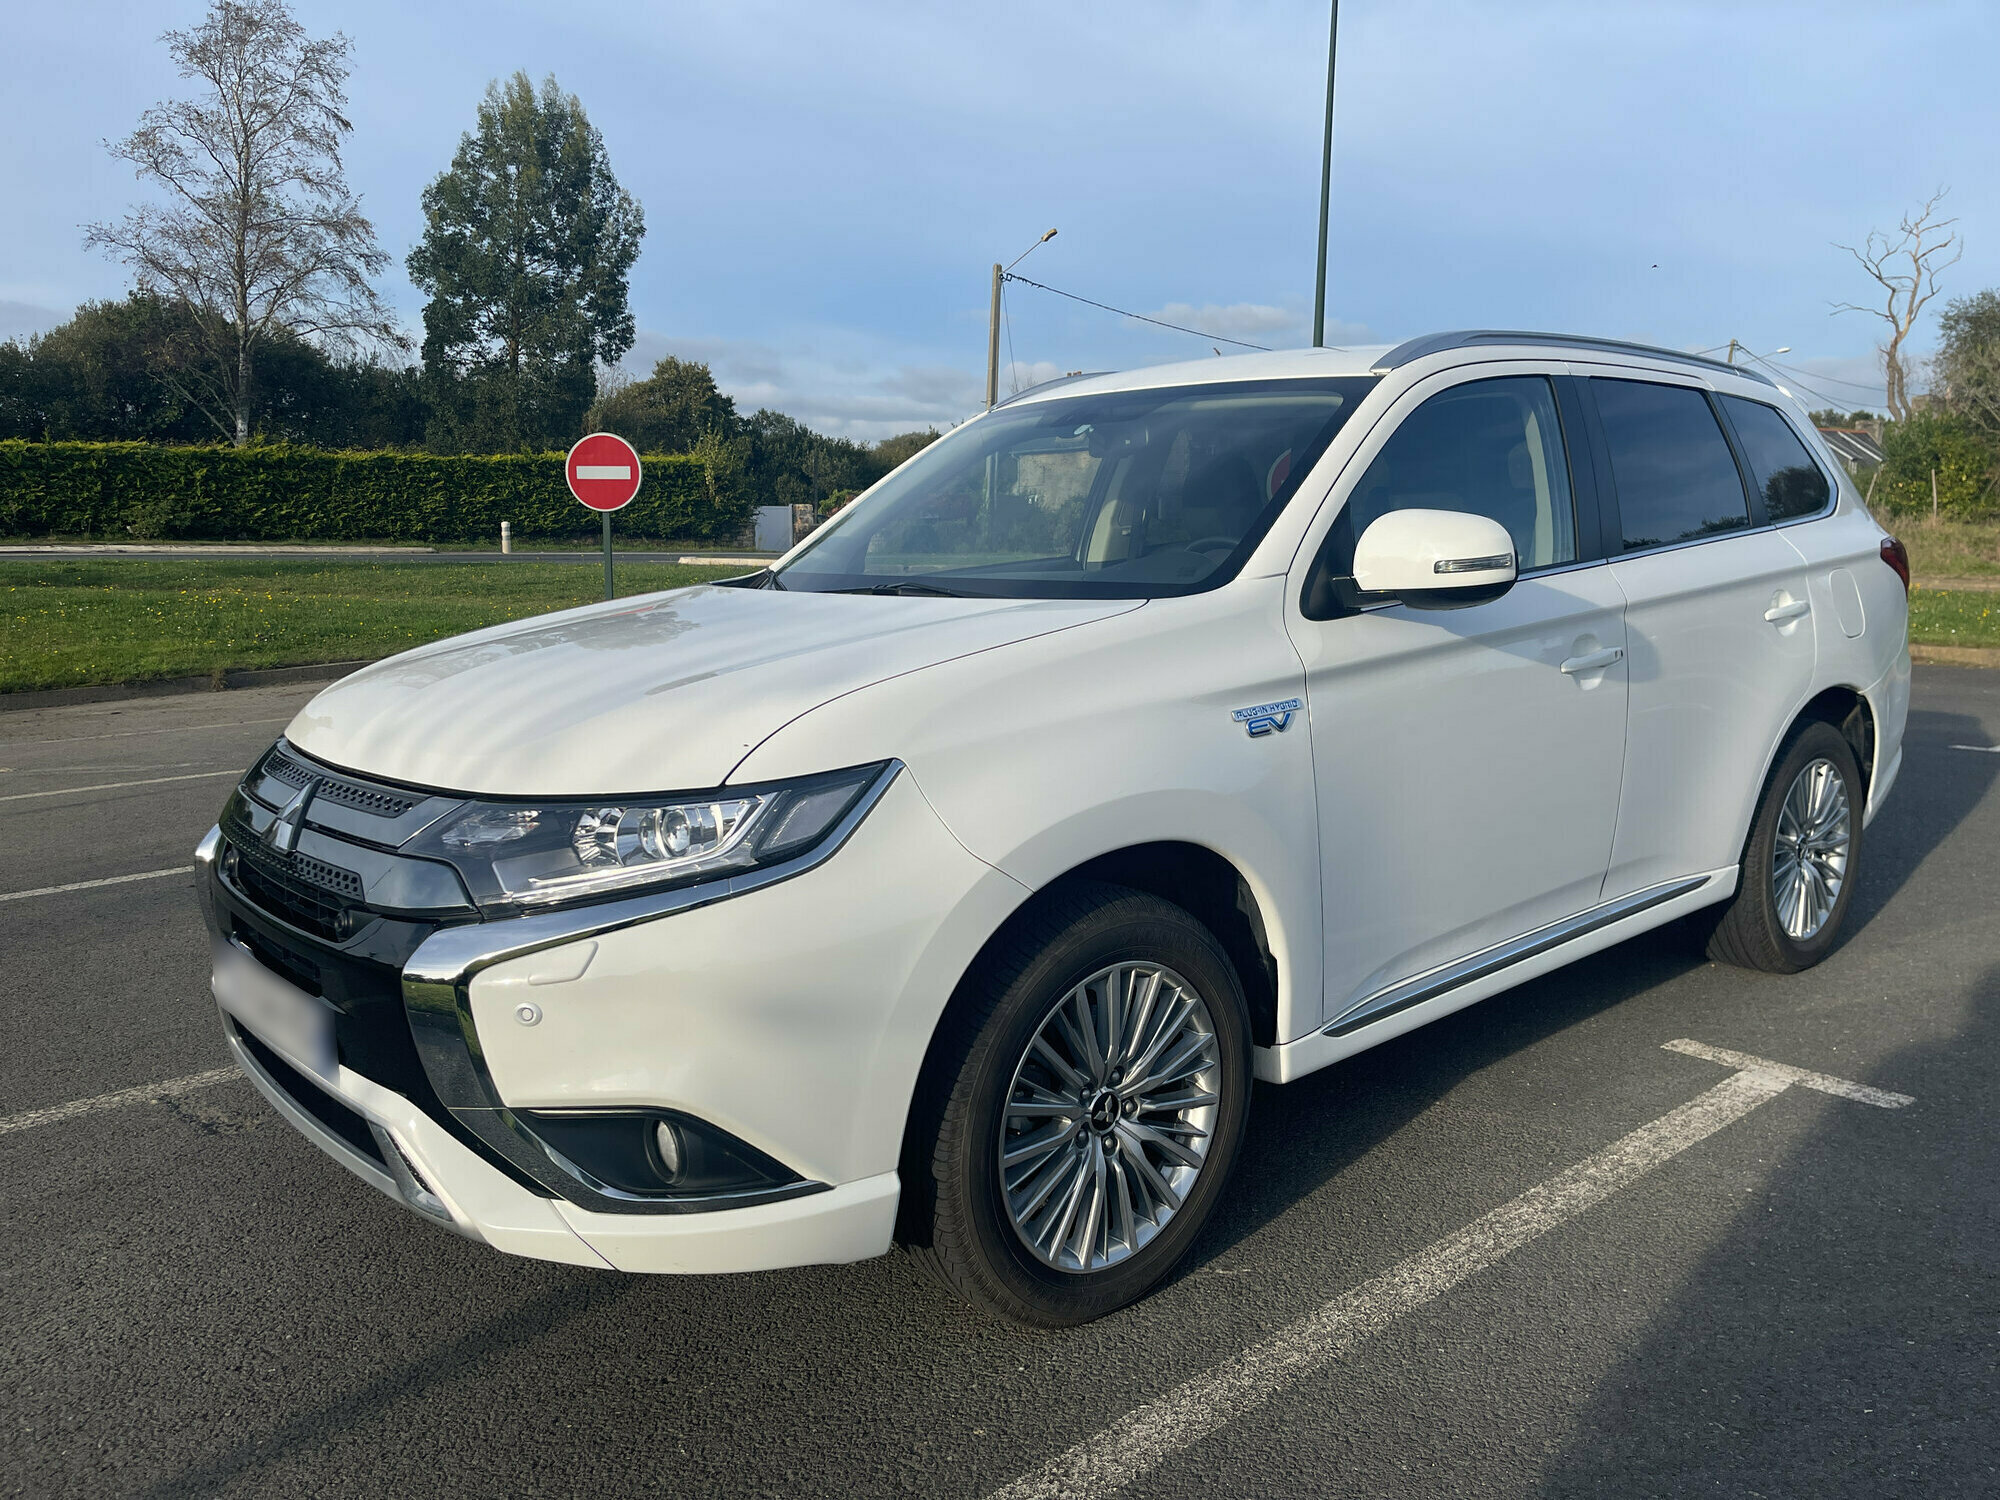 MITSUBISHI OUTLANDER 2.4 240H 135 HYBRIDE RECHARGEABLE TWIN-MOTOR BUSINESS 4WD BVA